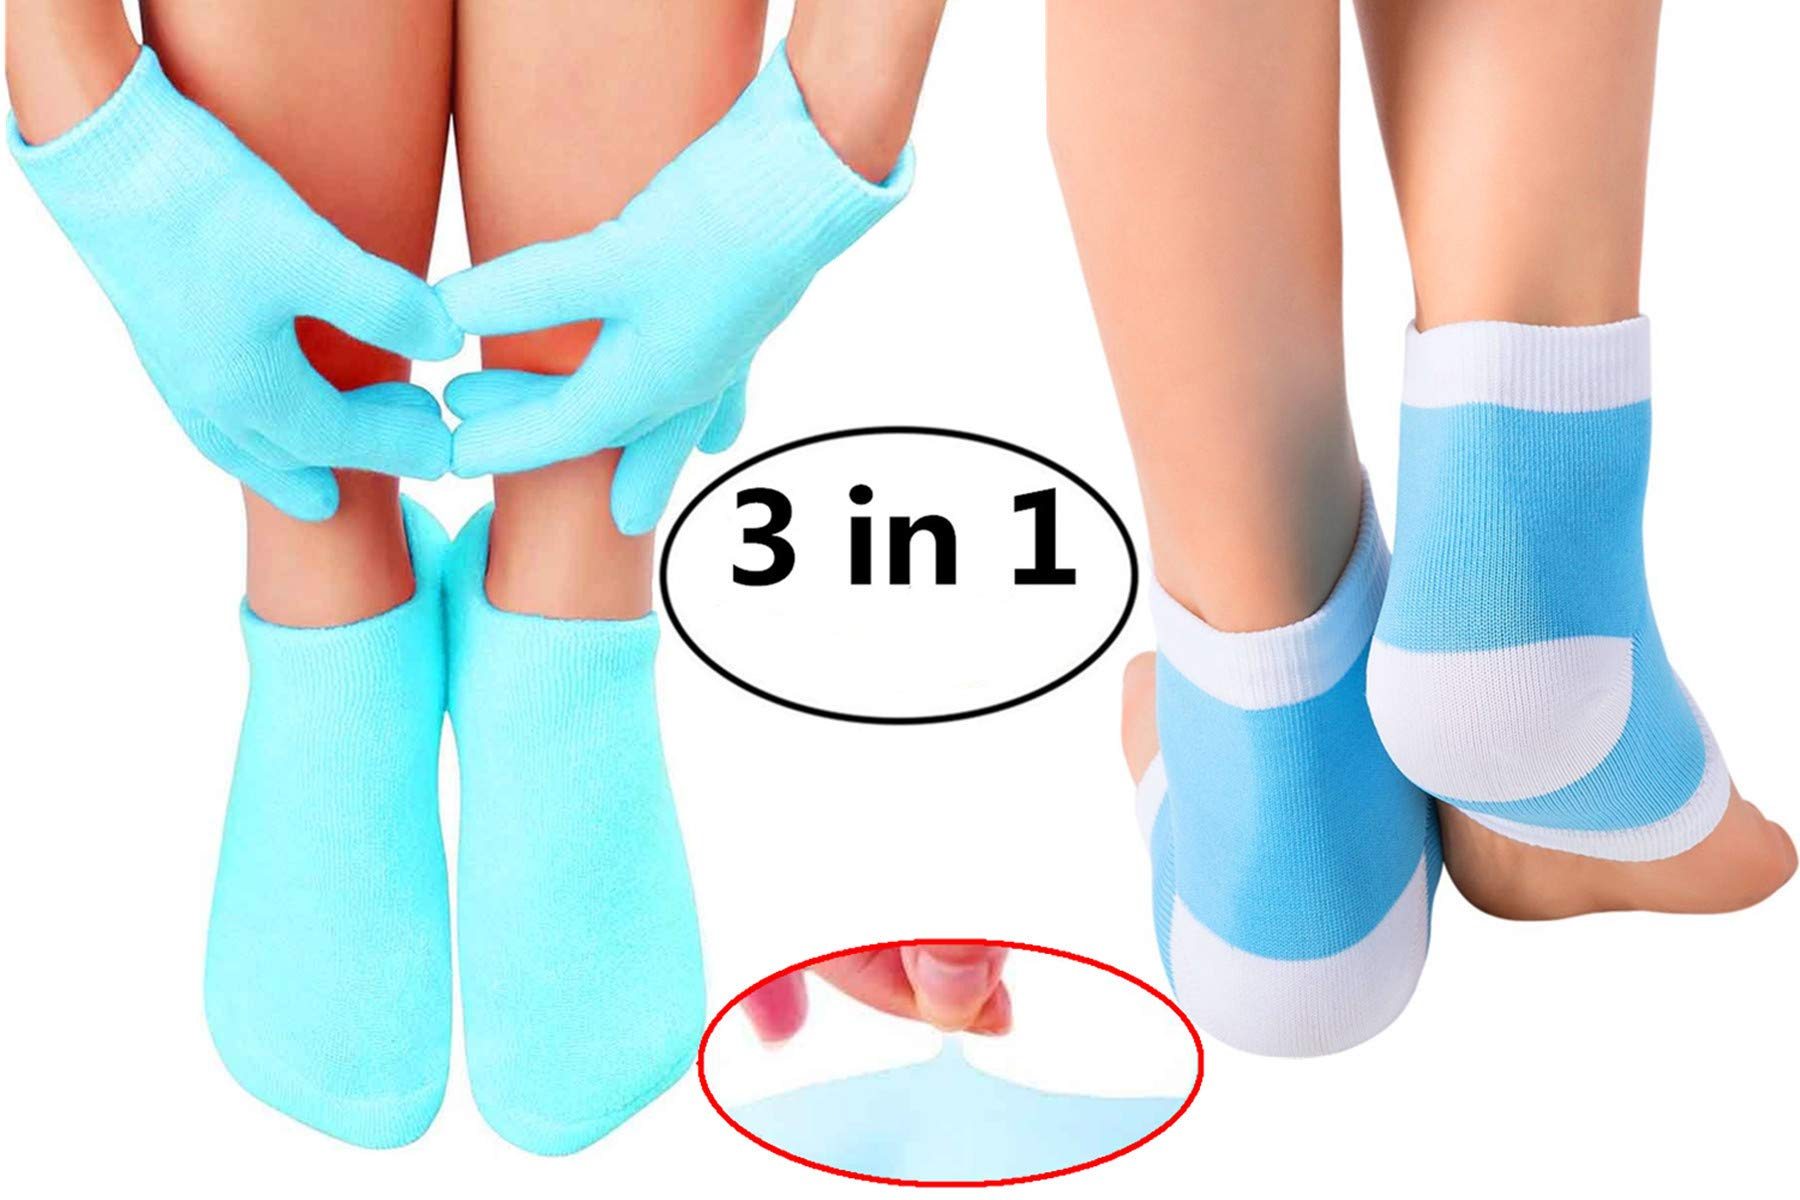 Gel Moisturizing Spa Gloves and Socks Heel Socks for Dry Hands and Feet - Fast Cracked Heel Repair and Simple Foot Skin Care with Gel Foot Sleeves for Women and Men Blue